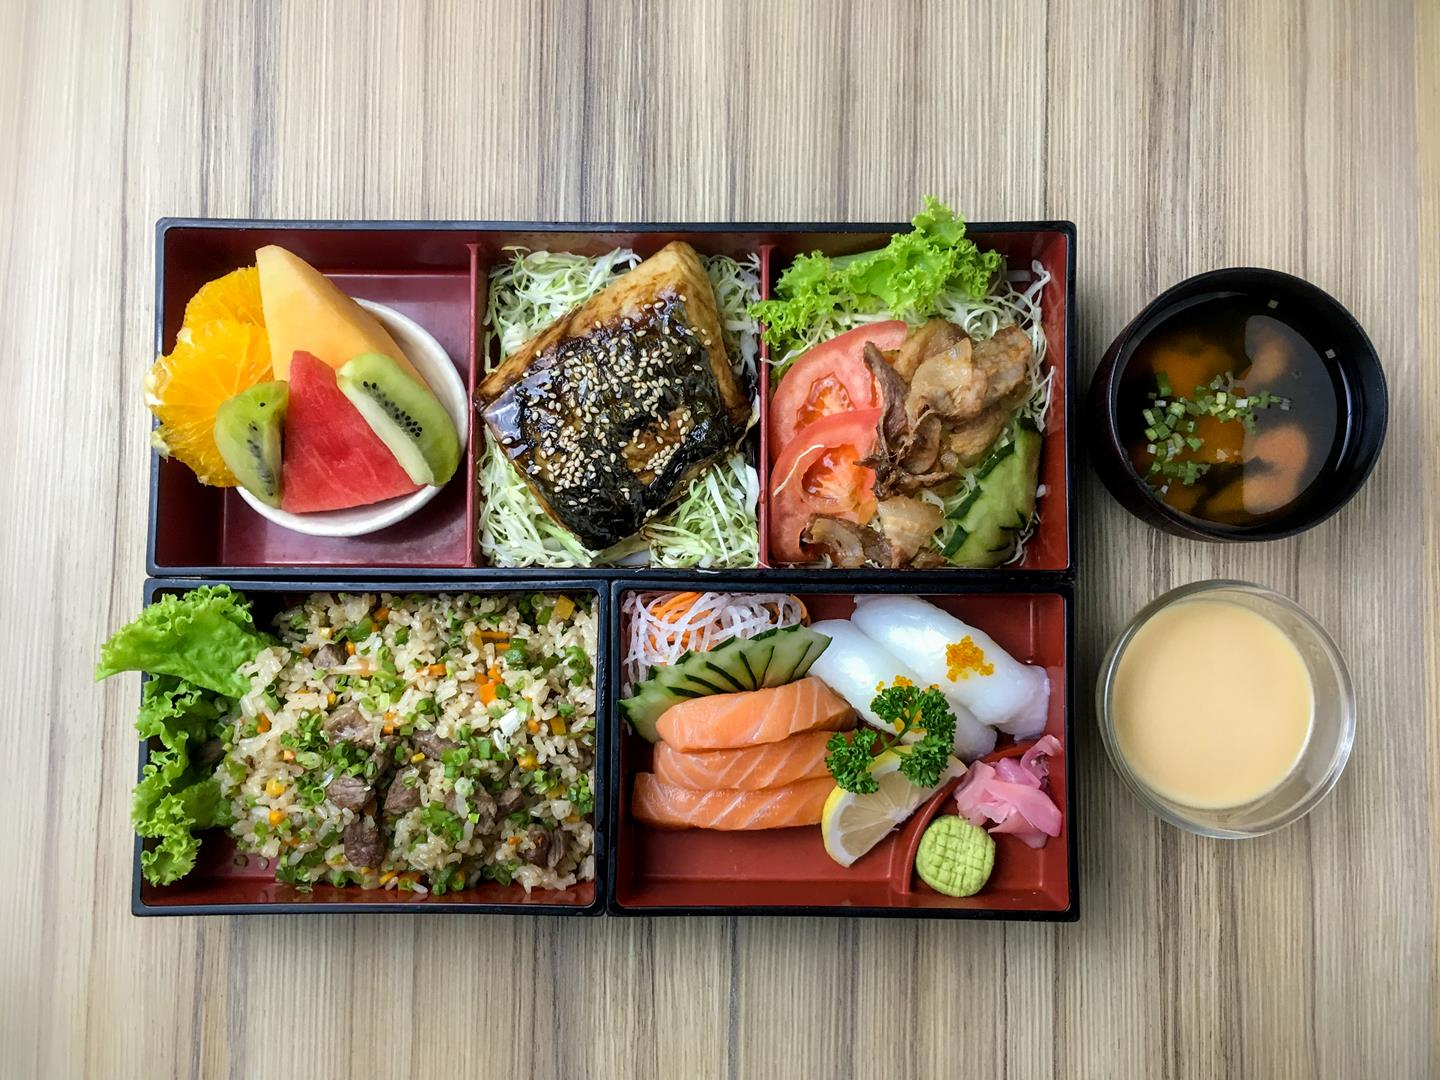 The Mediterranean bento box is for diners who prefer grilled kingfisher (sawara) and Ika nigiri.